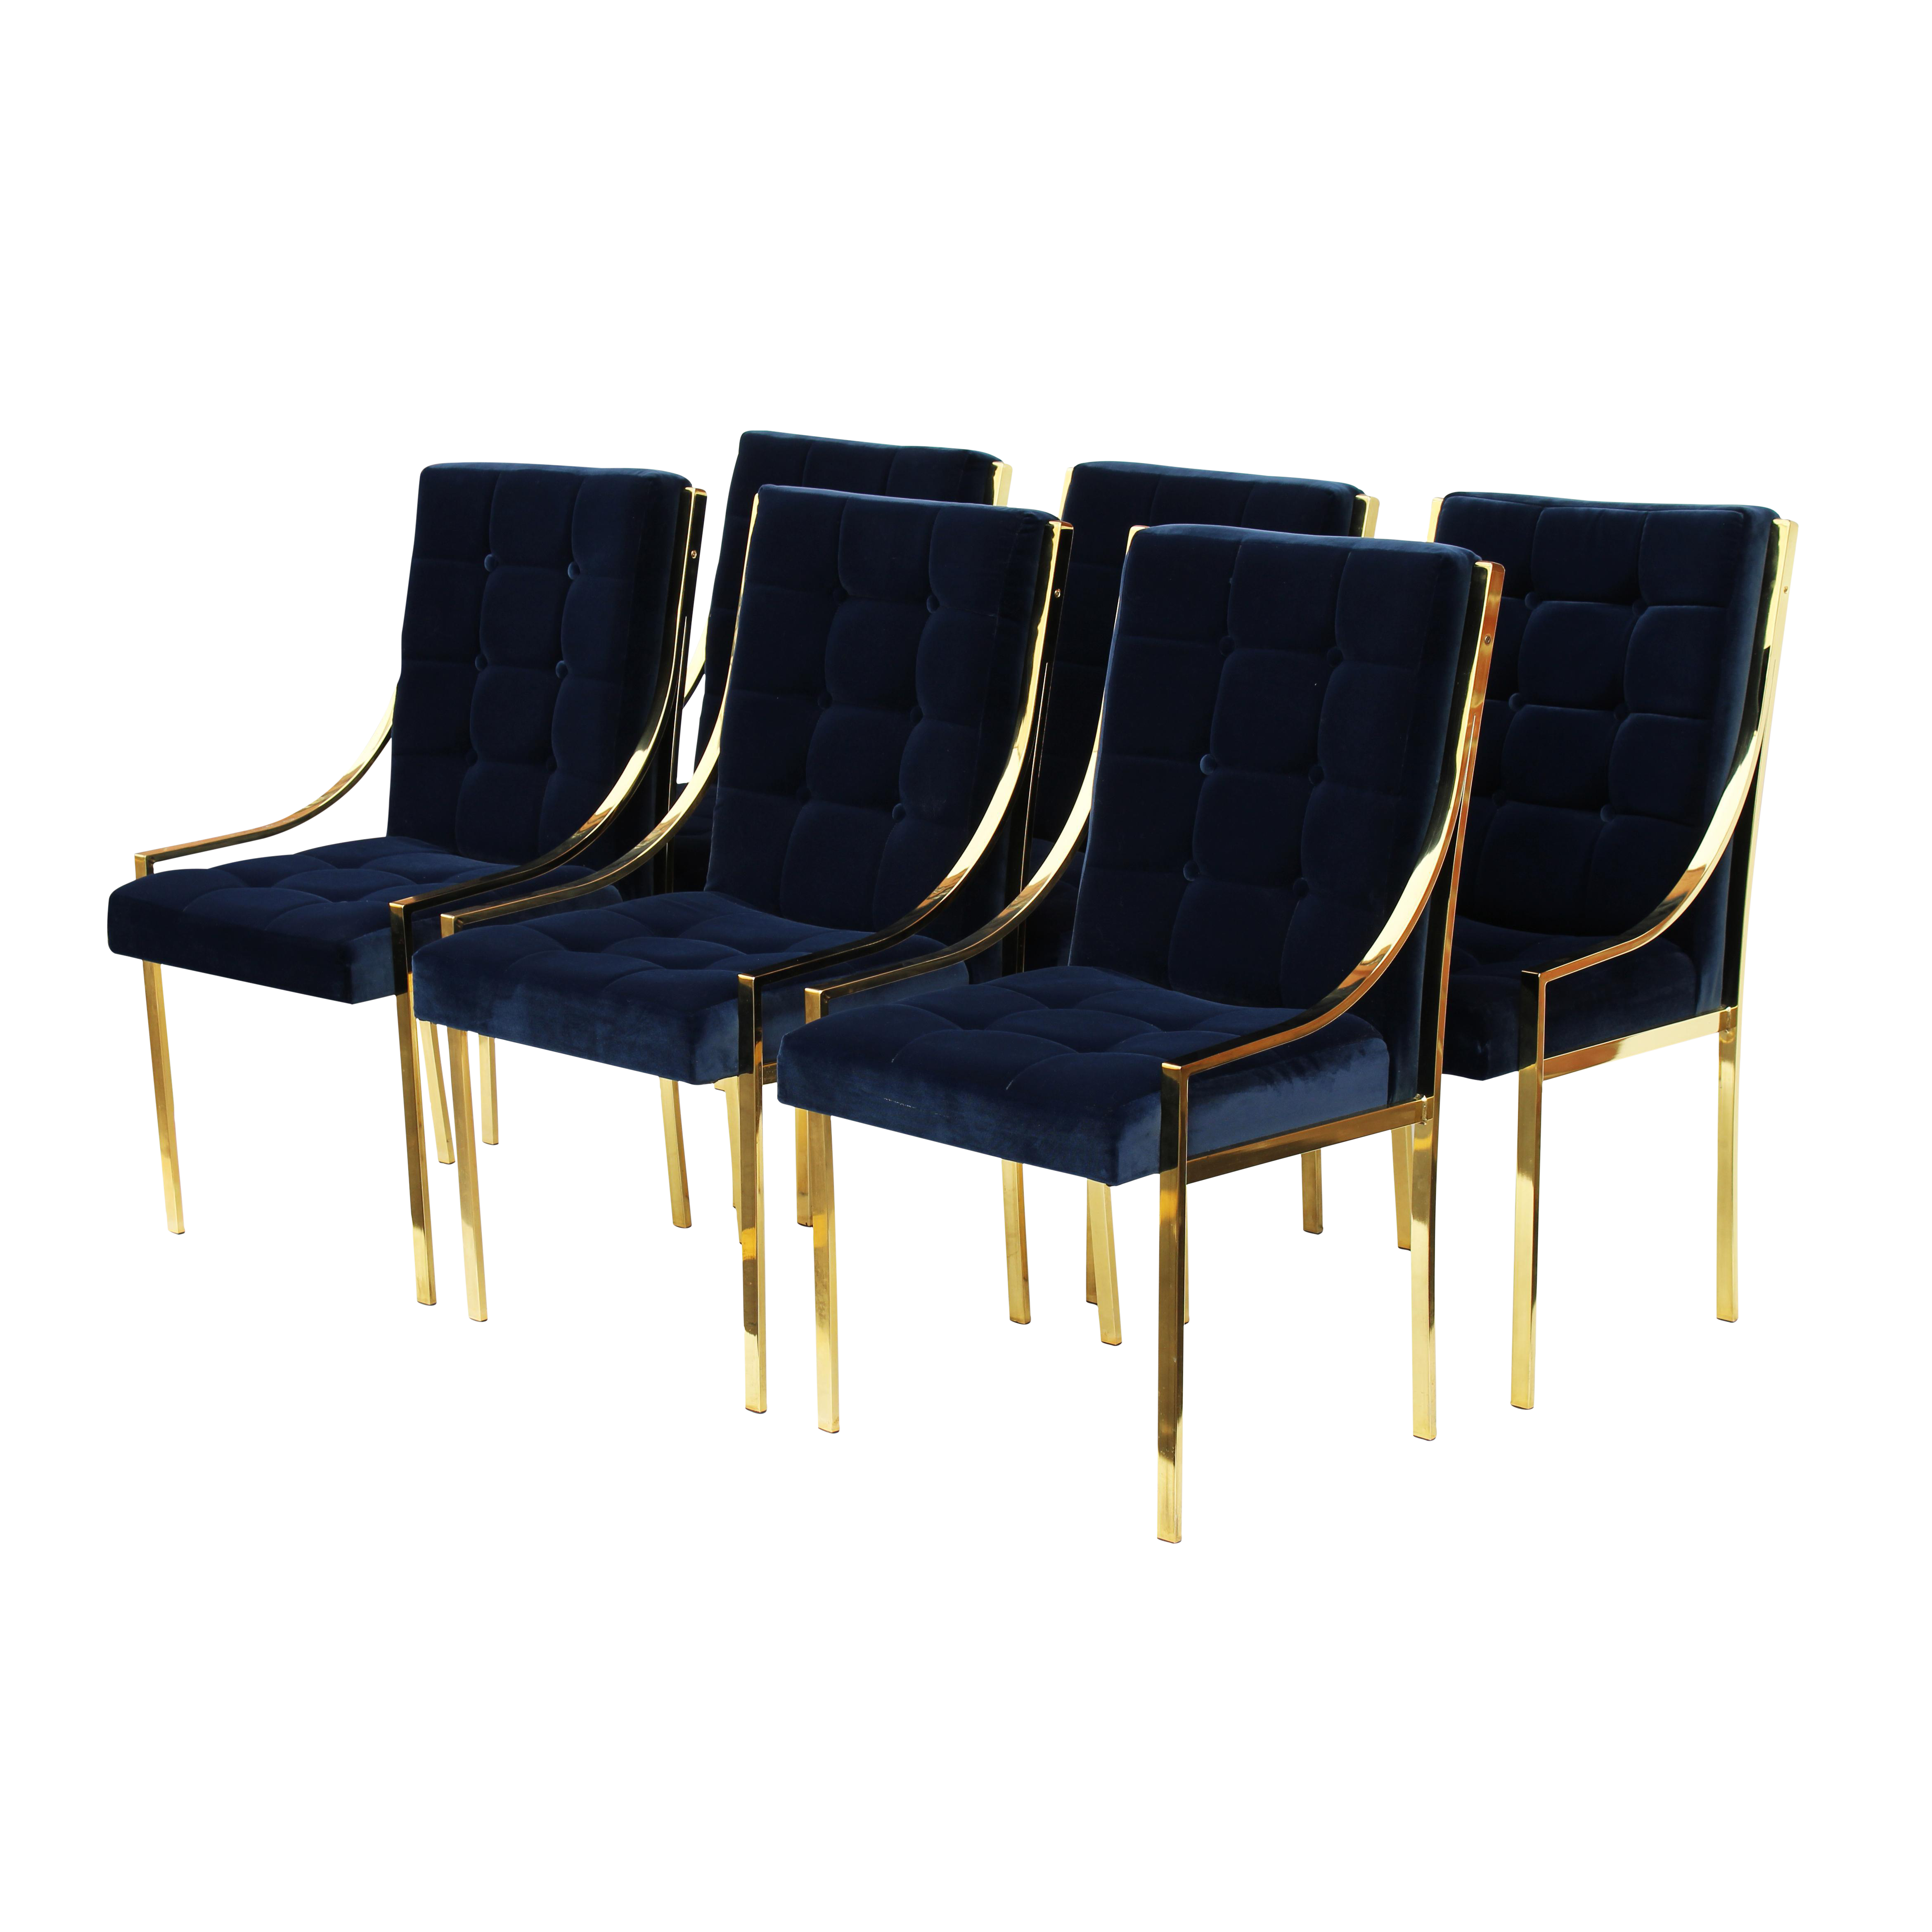 Bassett Furniture Blue Velvet & Brass Dining Chairs Set of 6